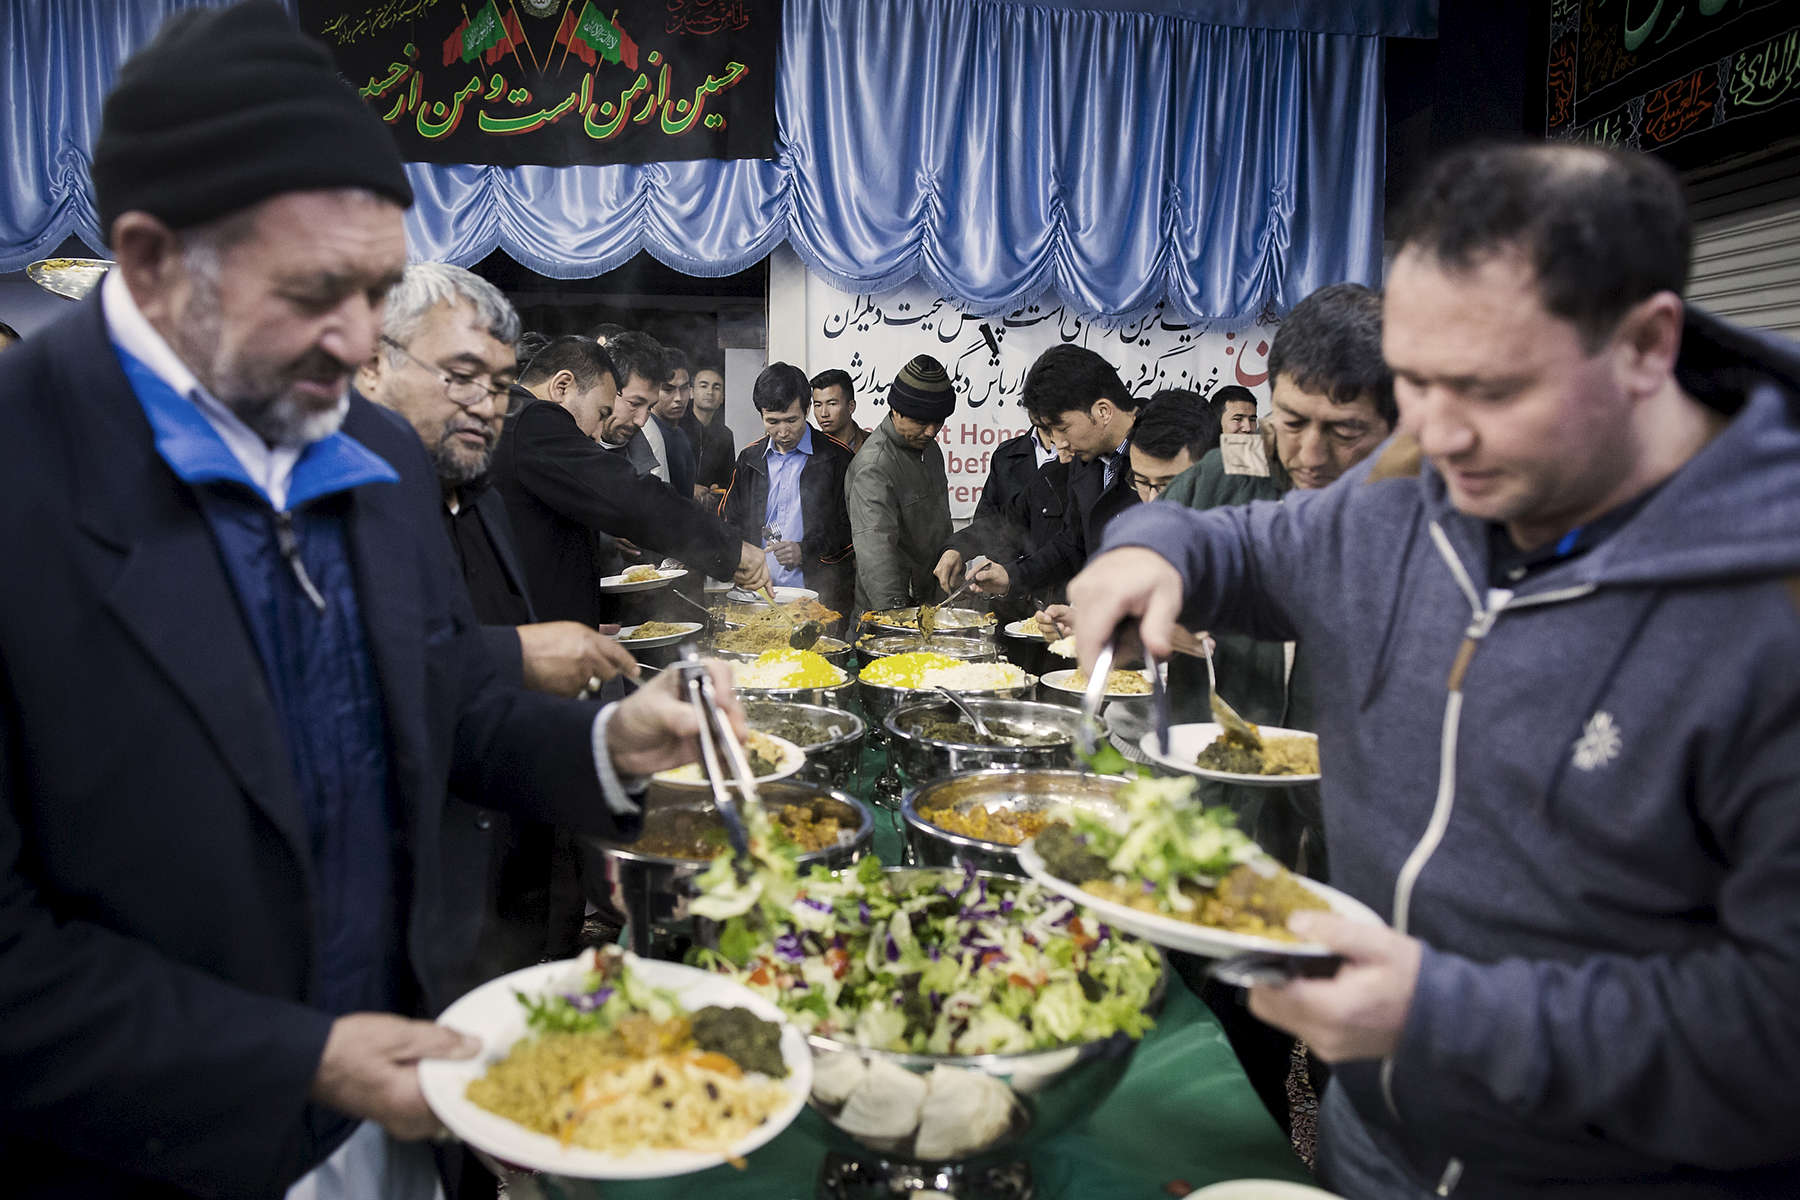 At the Ershad Islamic Centre in Lidcombe, the Hazara community share an iftar meal to break their fasting. As mostly Shiite Muslims, the Hazara are targets for violence by extremist Sunni Muslim groups such as the Taliban and Lashkar-e-Jhangvi in both native Afghanistan and Pakistan. Shia Muslims in Afghanistan make up approximately 15% of the population.